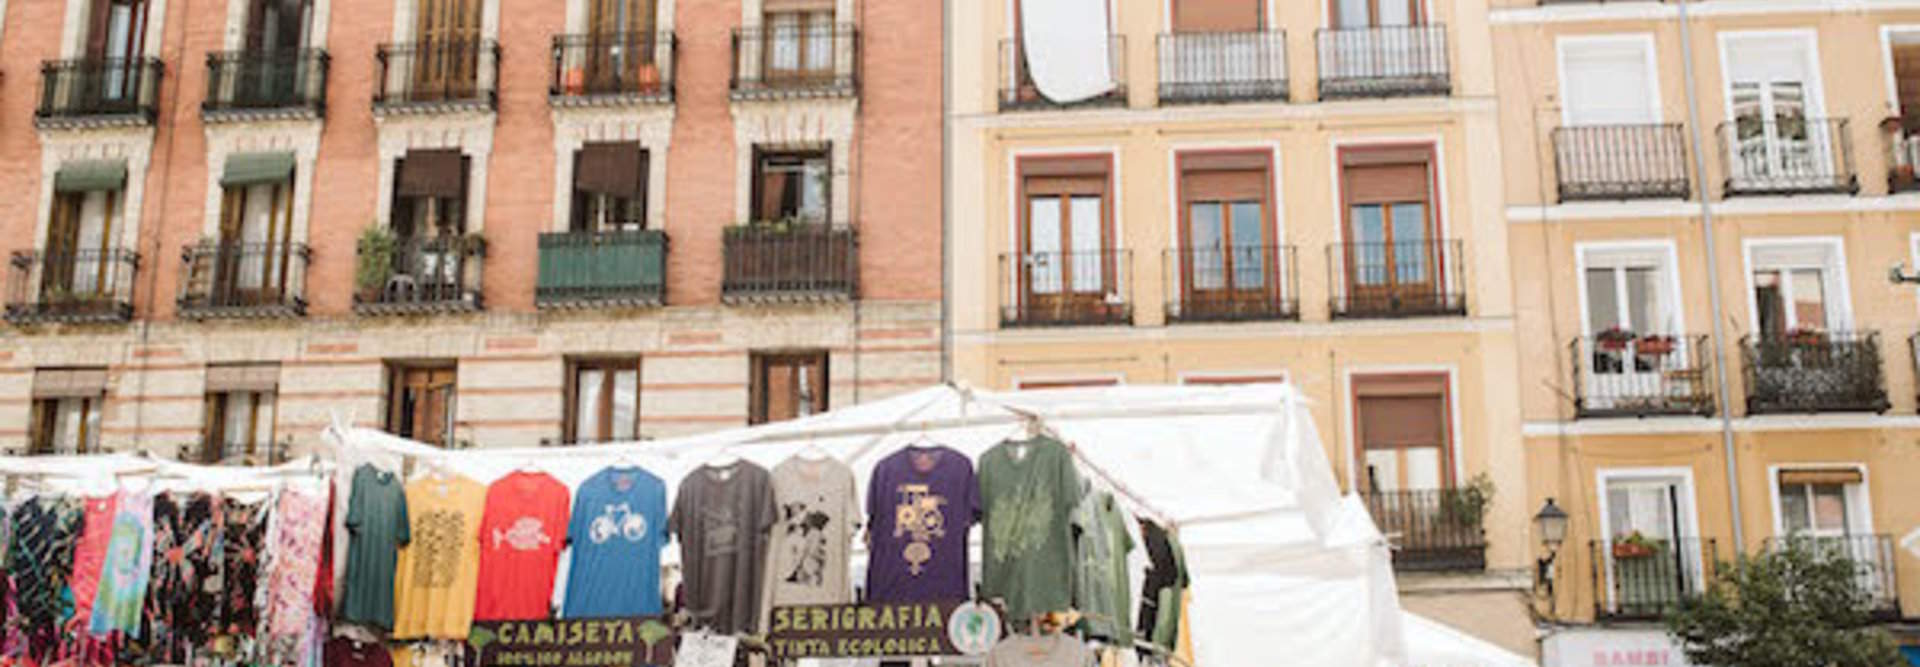 Home rastro madrid